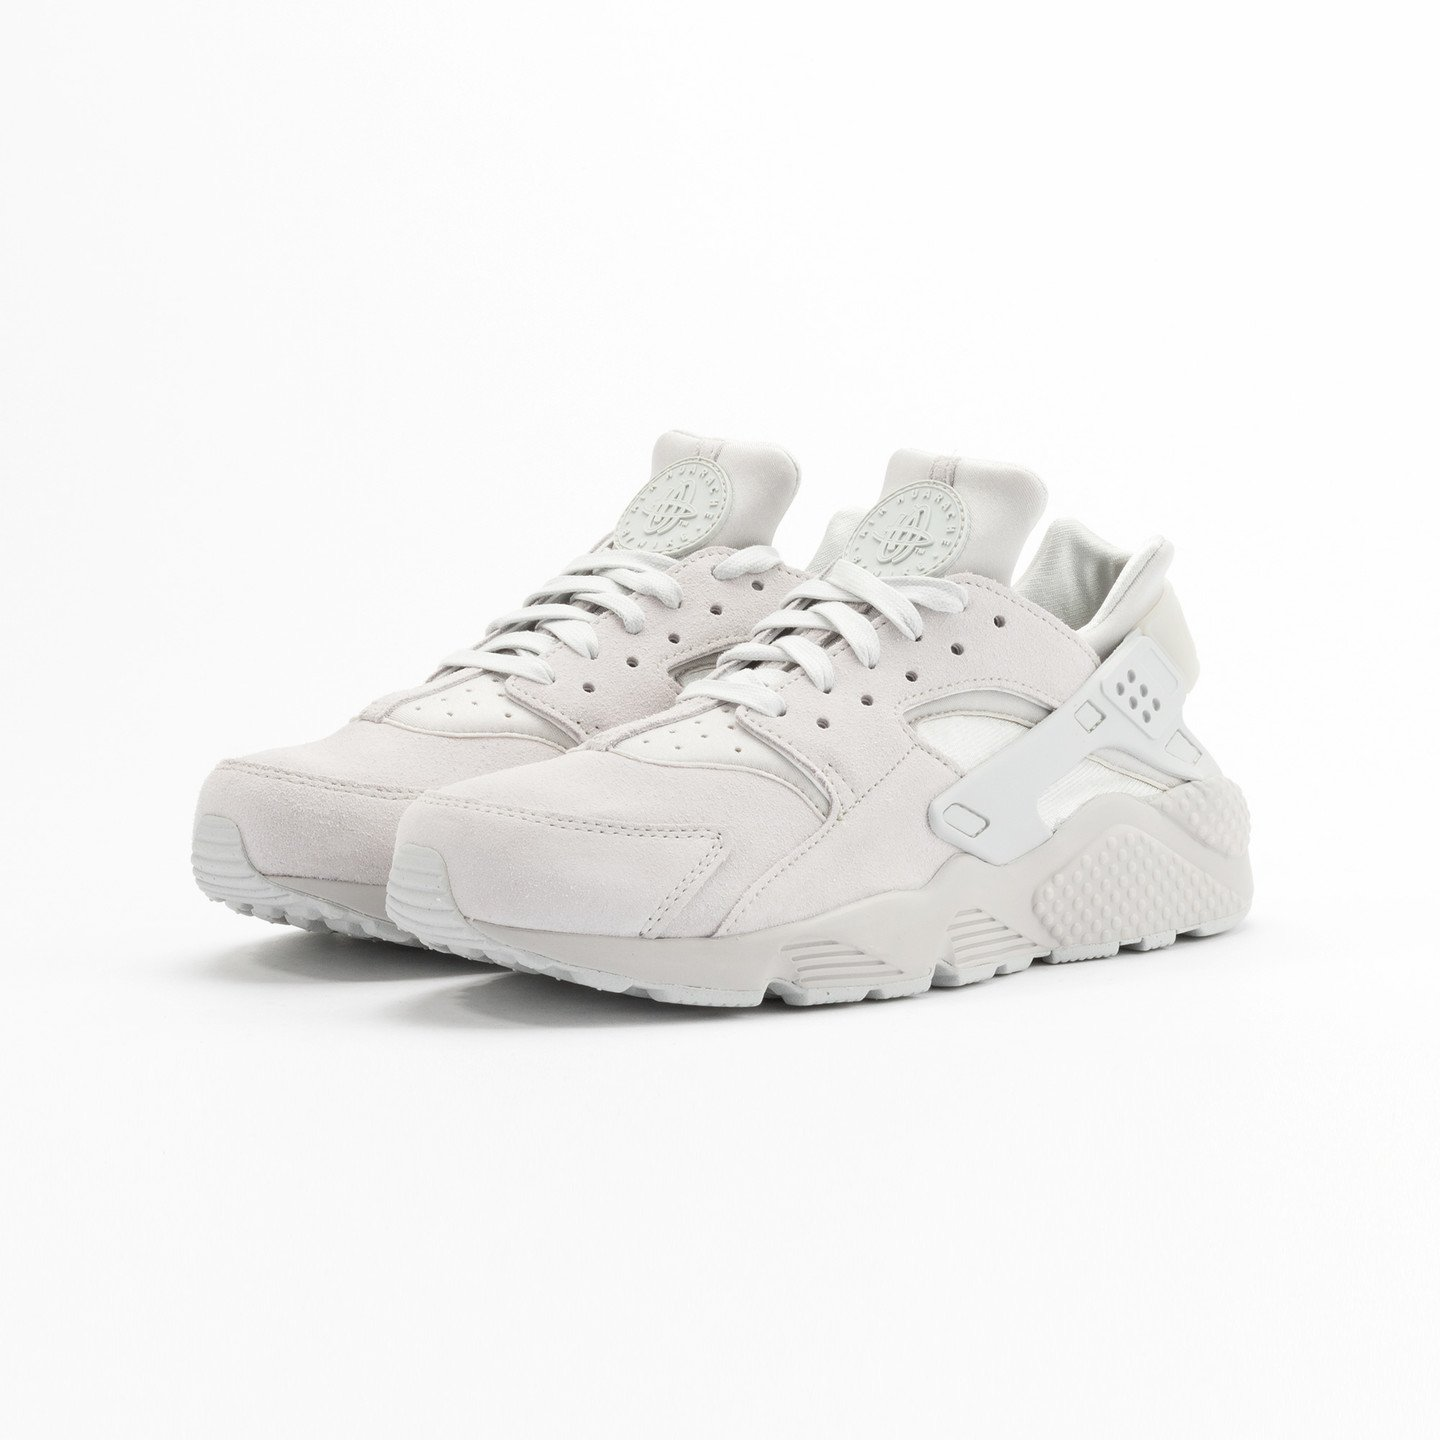 Nike Air Huarache Run Premium Neutral Grey 704830-005-44.5